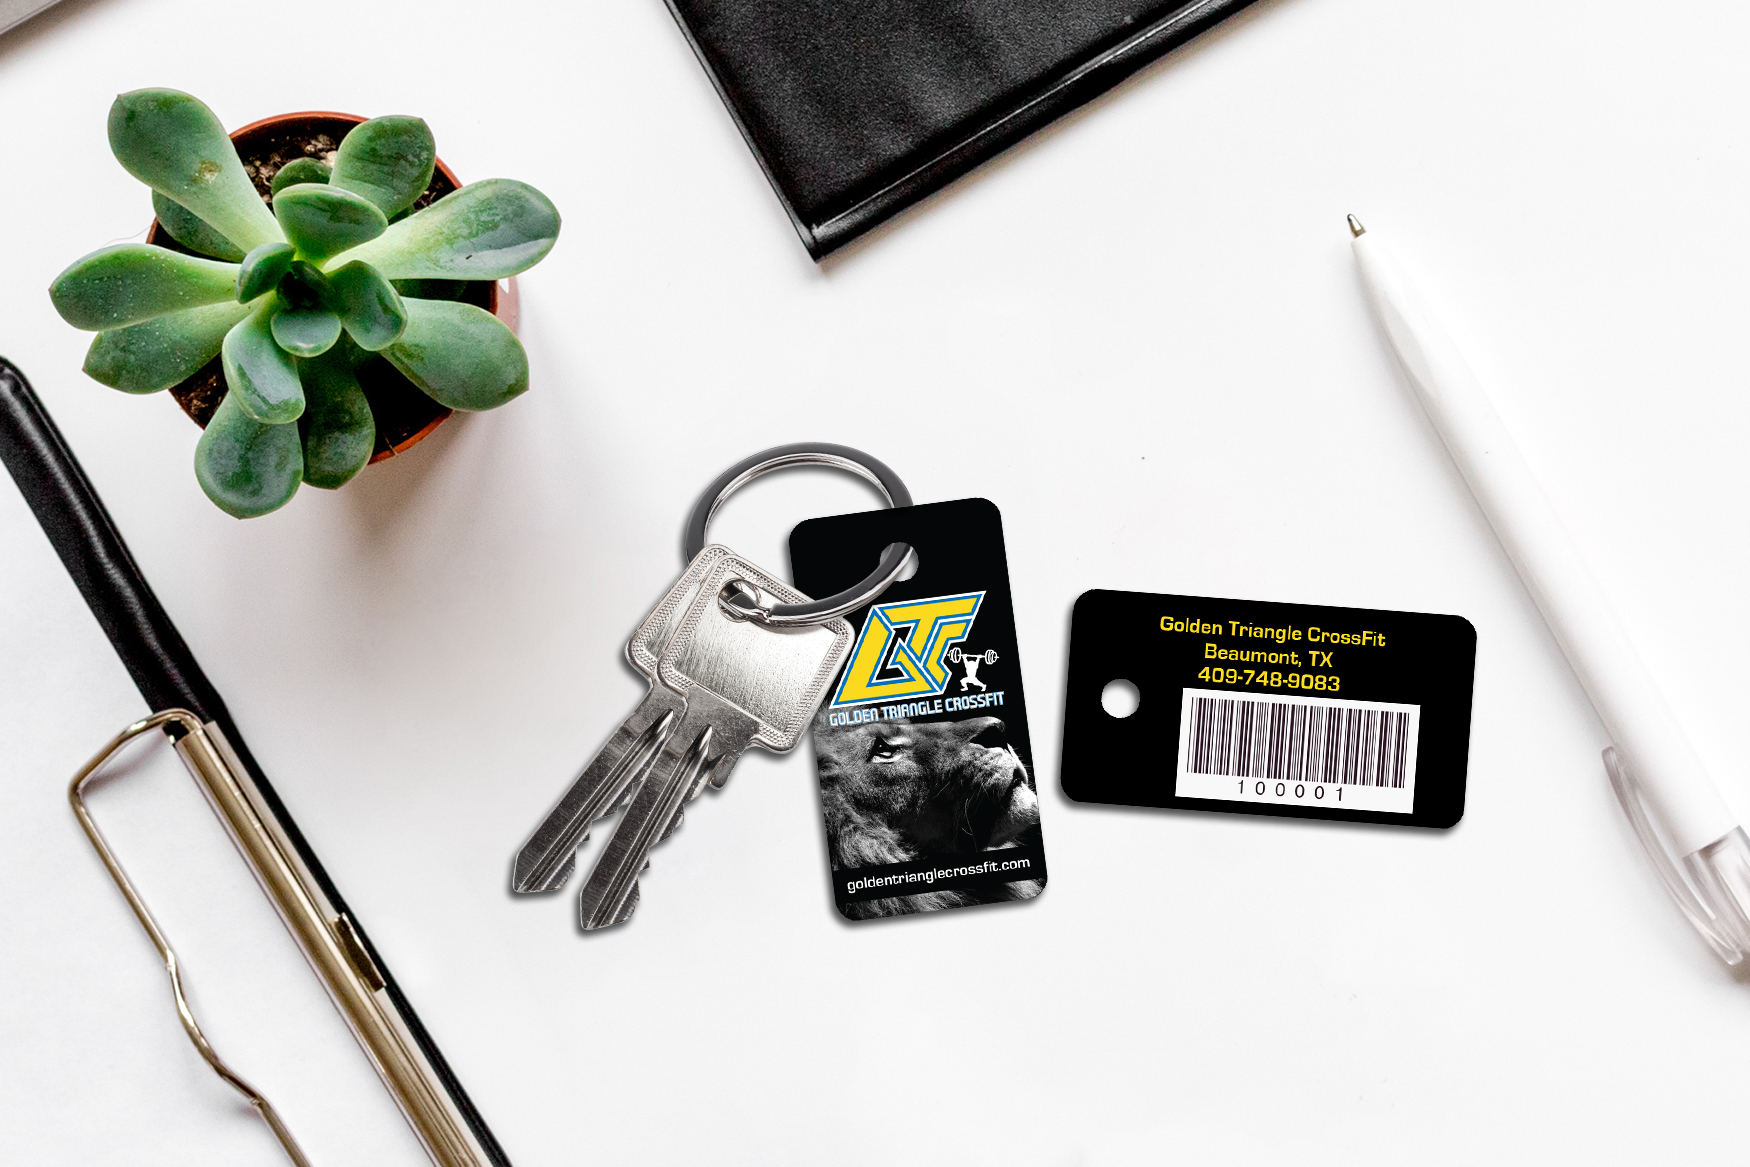 Access Pass for a Gym, Fitness Center or Yoga Studio on Large Key Rings